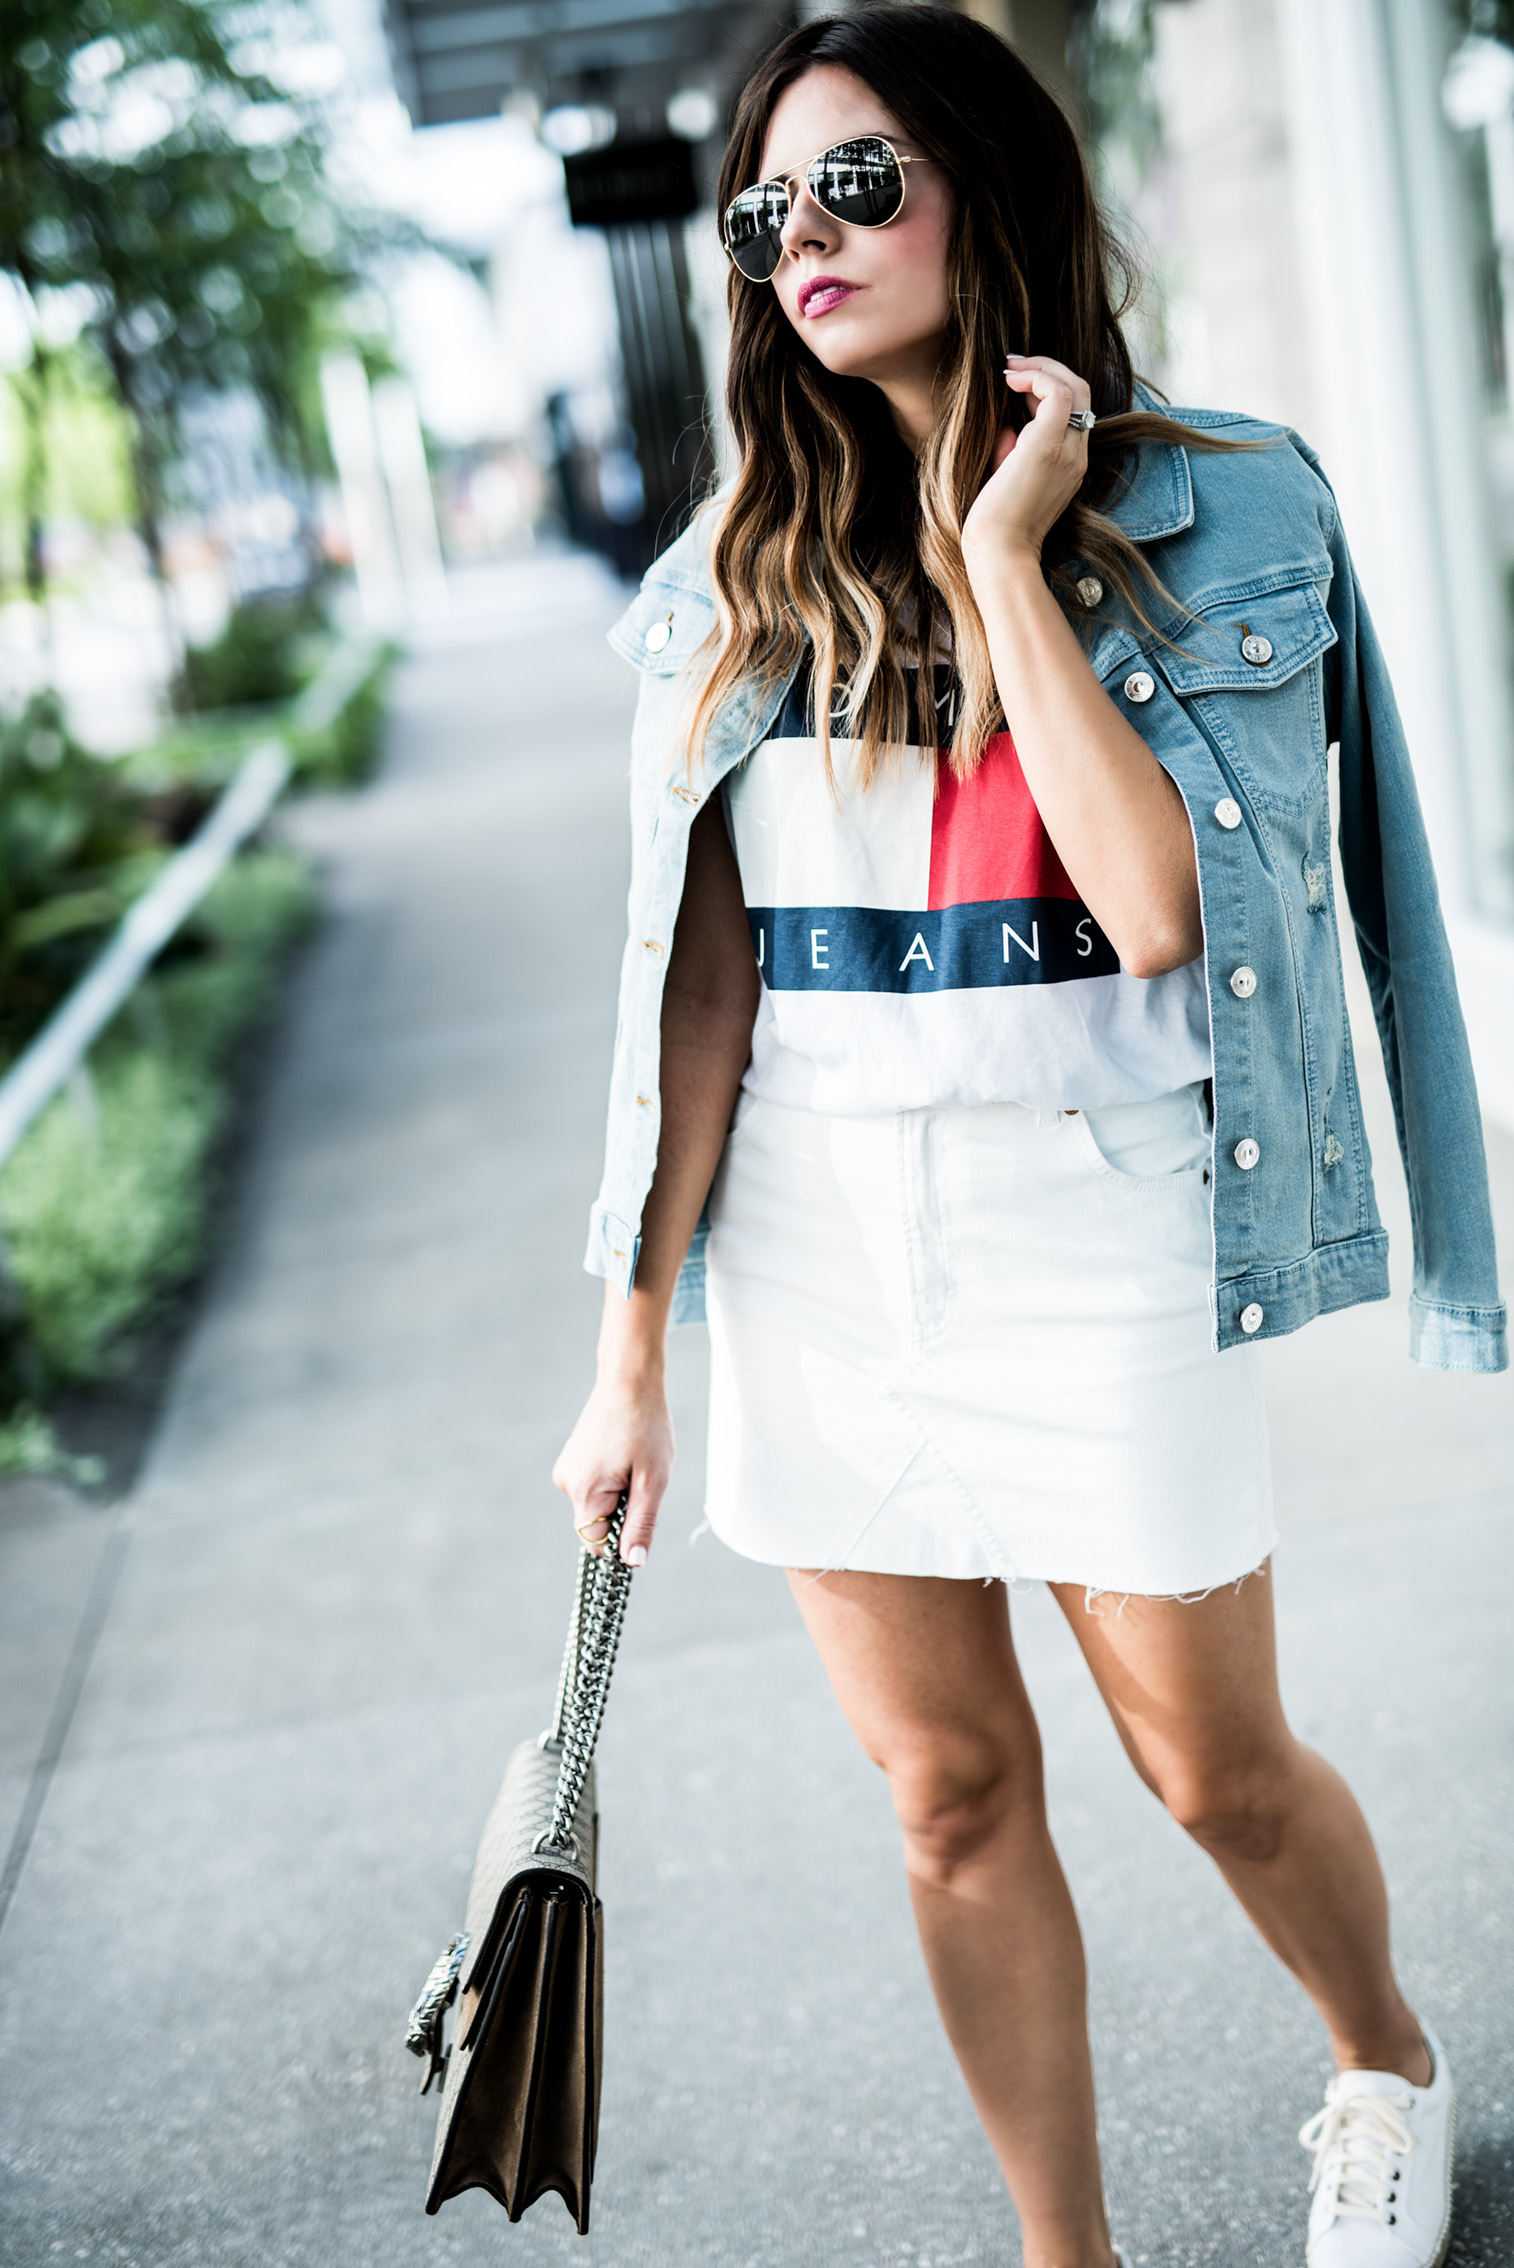 Houston fashion blogger Tiffany Jais | 90's Vibes - Tommy Hilfiger, classic logo tee, denim jacket outfits, streetstyle 2017